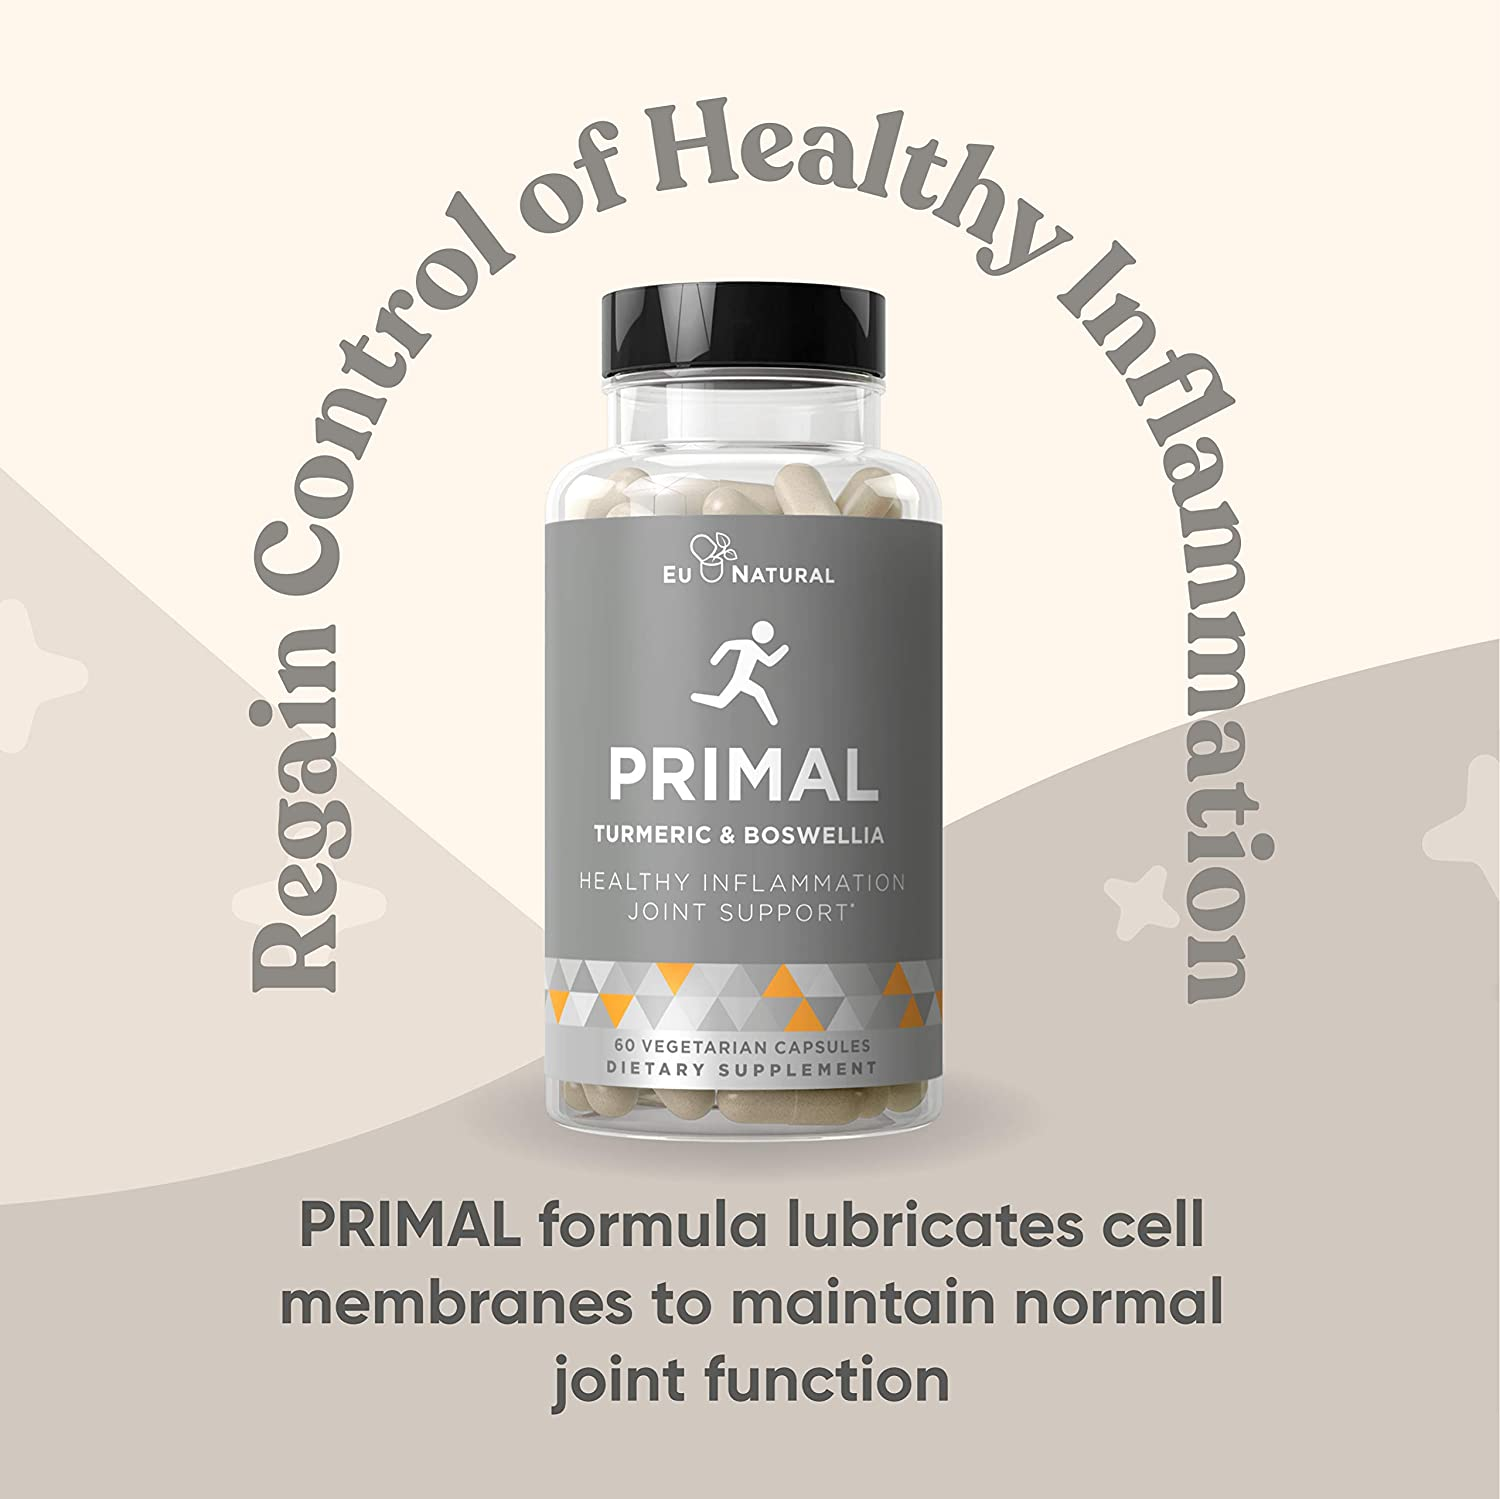 primal cigaret second oppose to fervid hurting relief